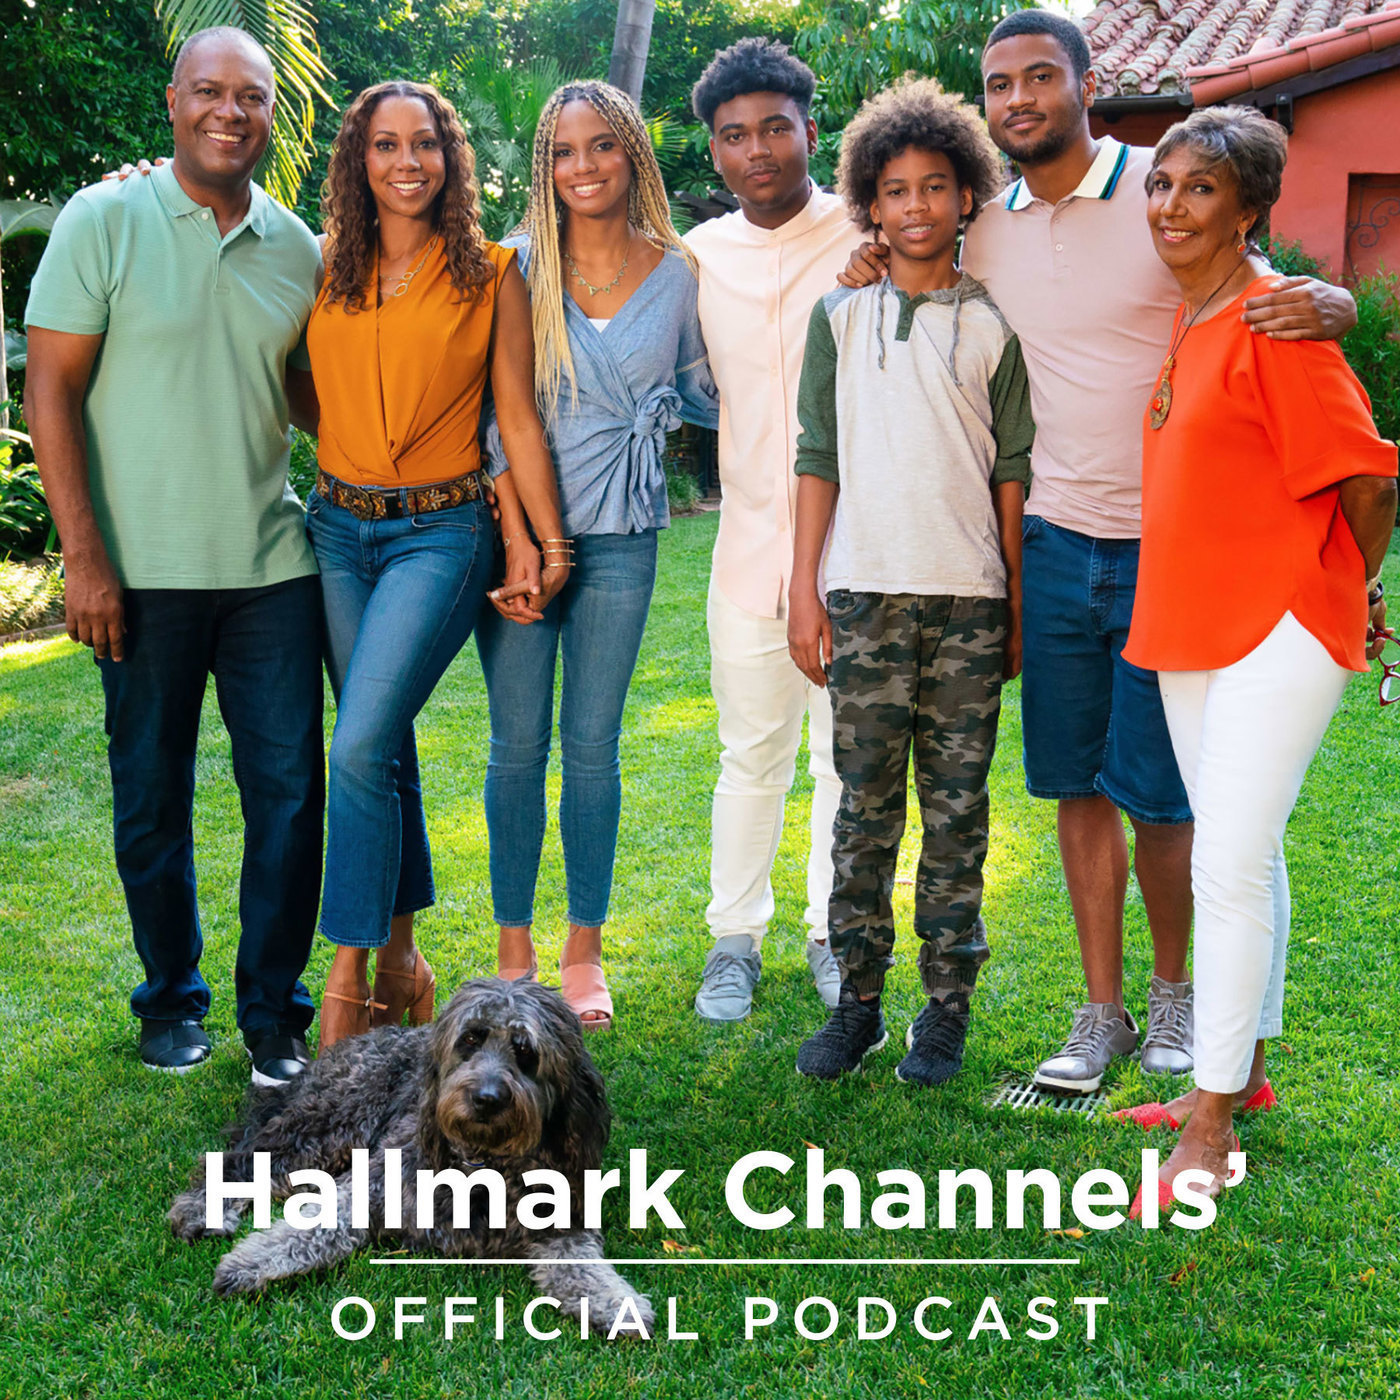 Hallmark Channels' Official Podcast: Meet the Peetes